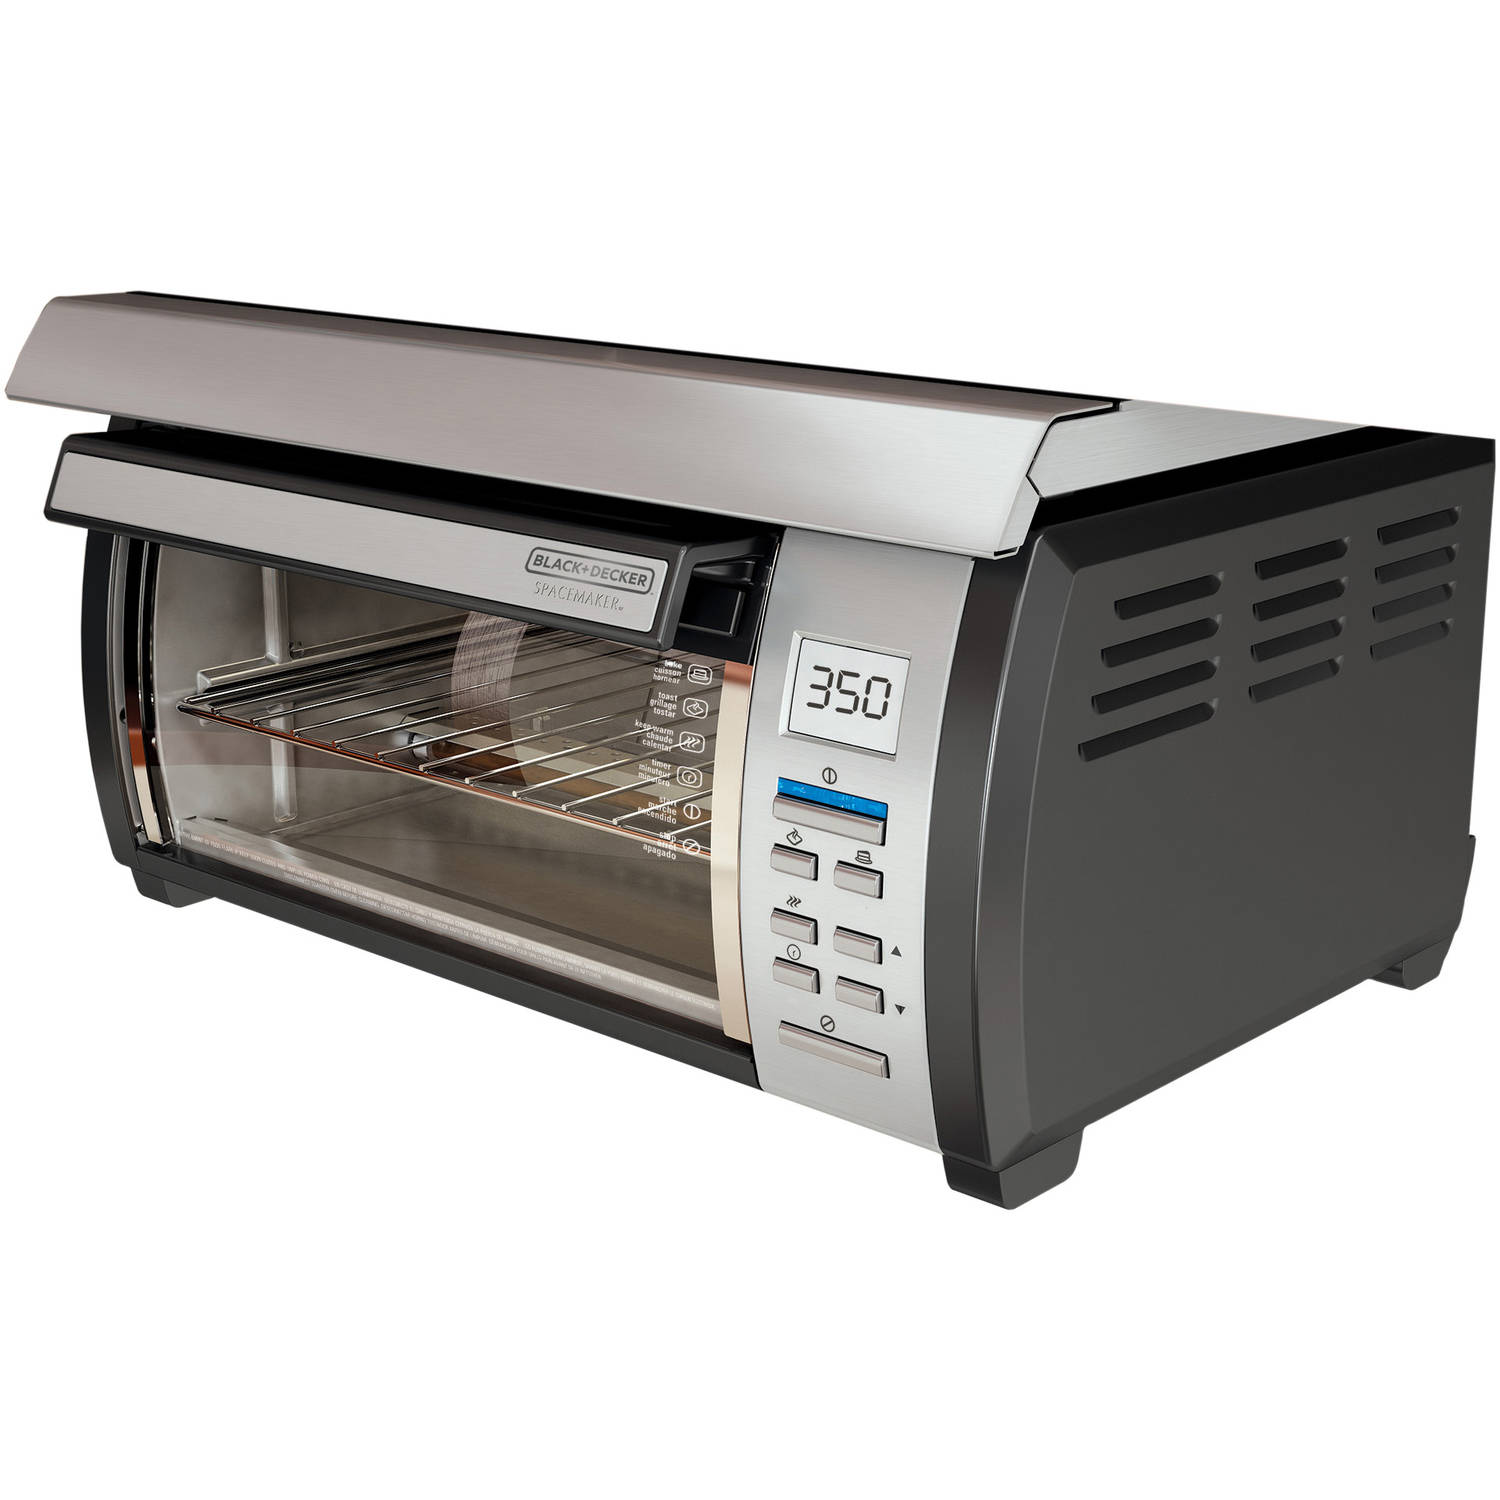 BLACK+DECKER Spacemaker Toaster Oven, Black and Stainless ...